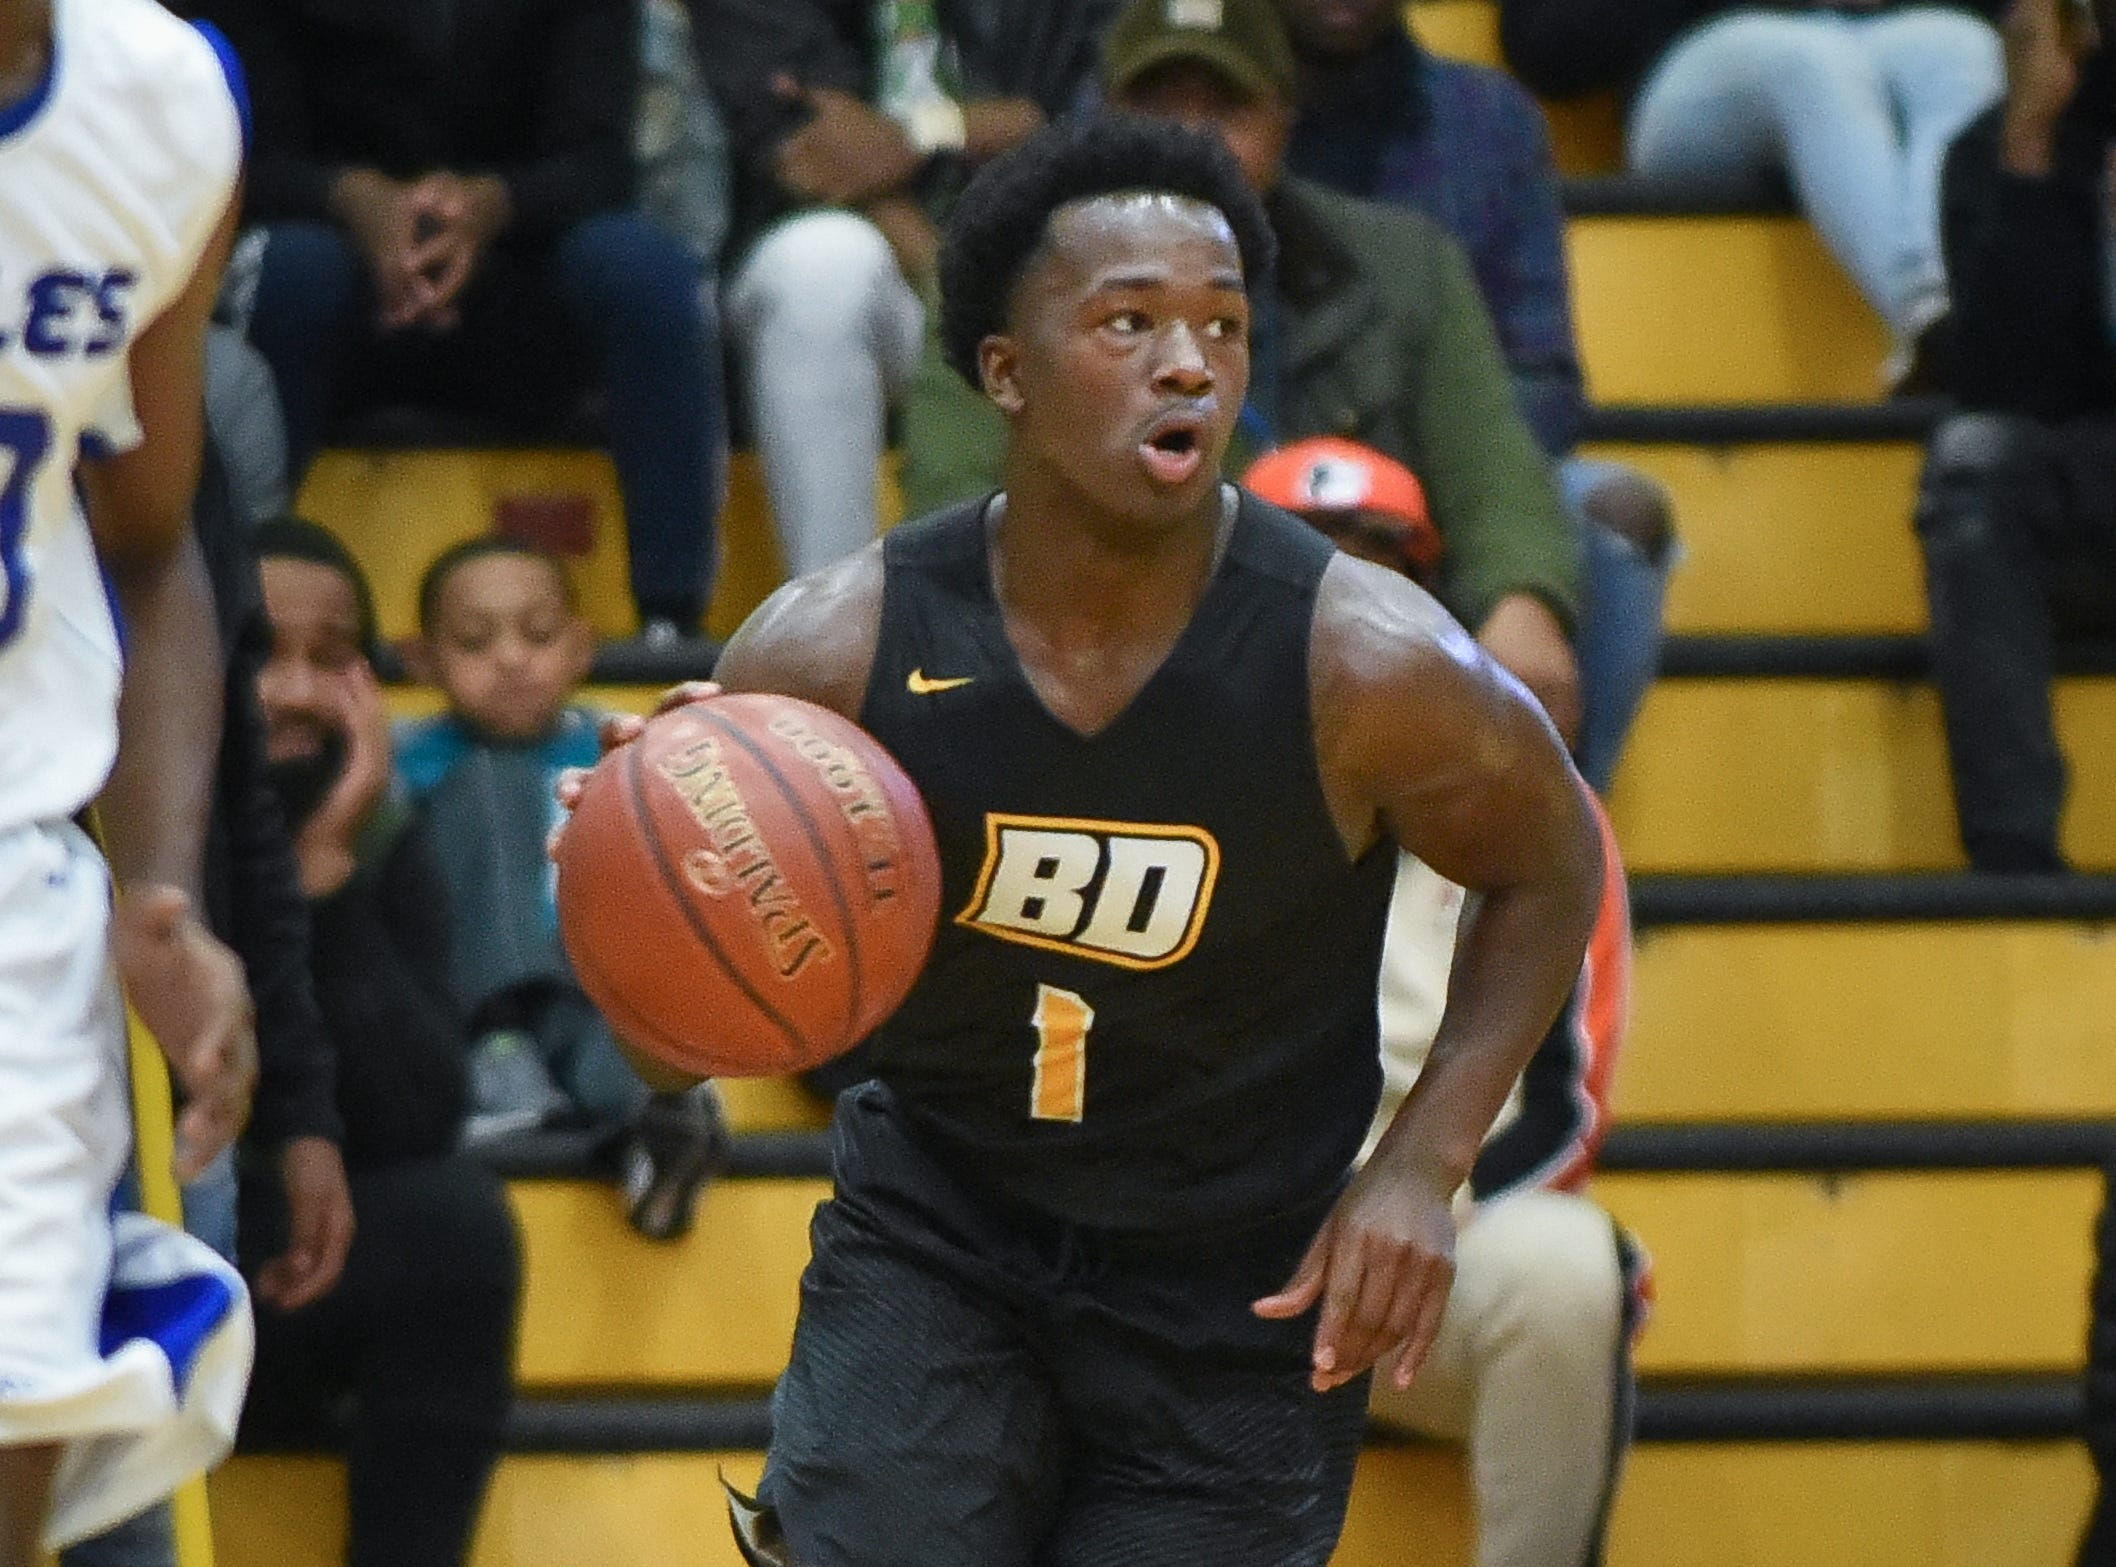 Brown Deer senior guard Jaylon Gentry brings the ball up court against Destiny in the Fresh Coast Classic basketball showcase Saturday, November 24, 2018, at UW-Milwaukee's Klotche Center.